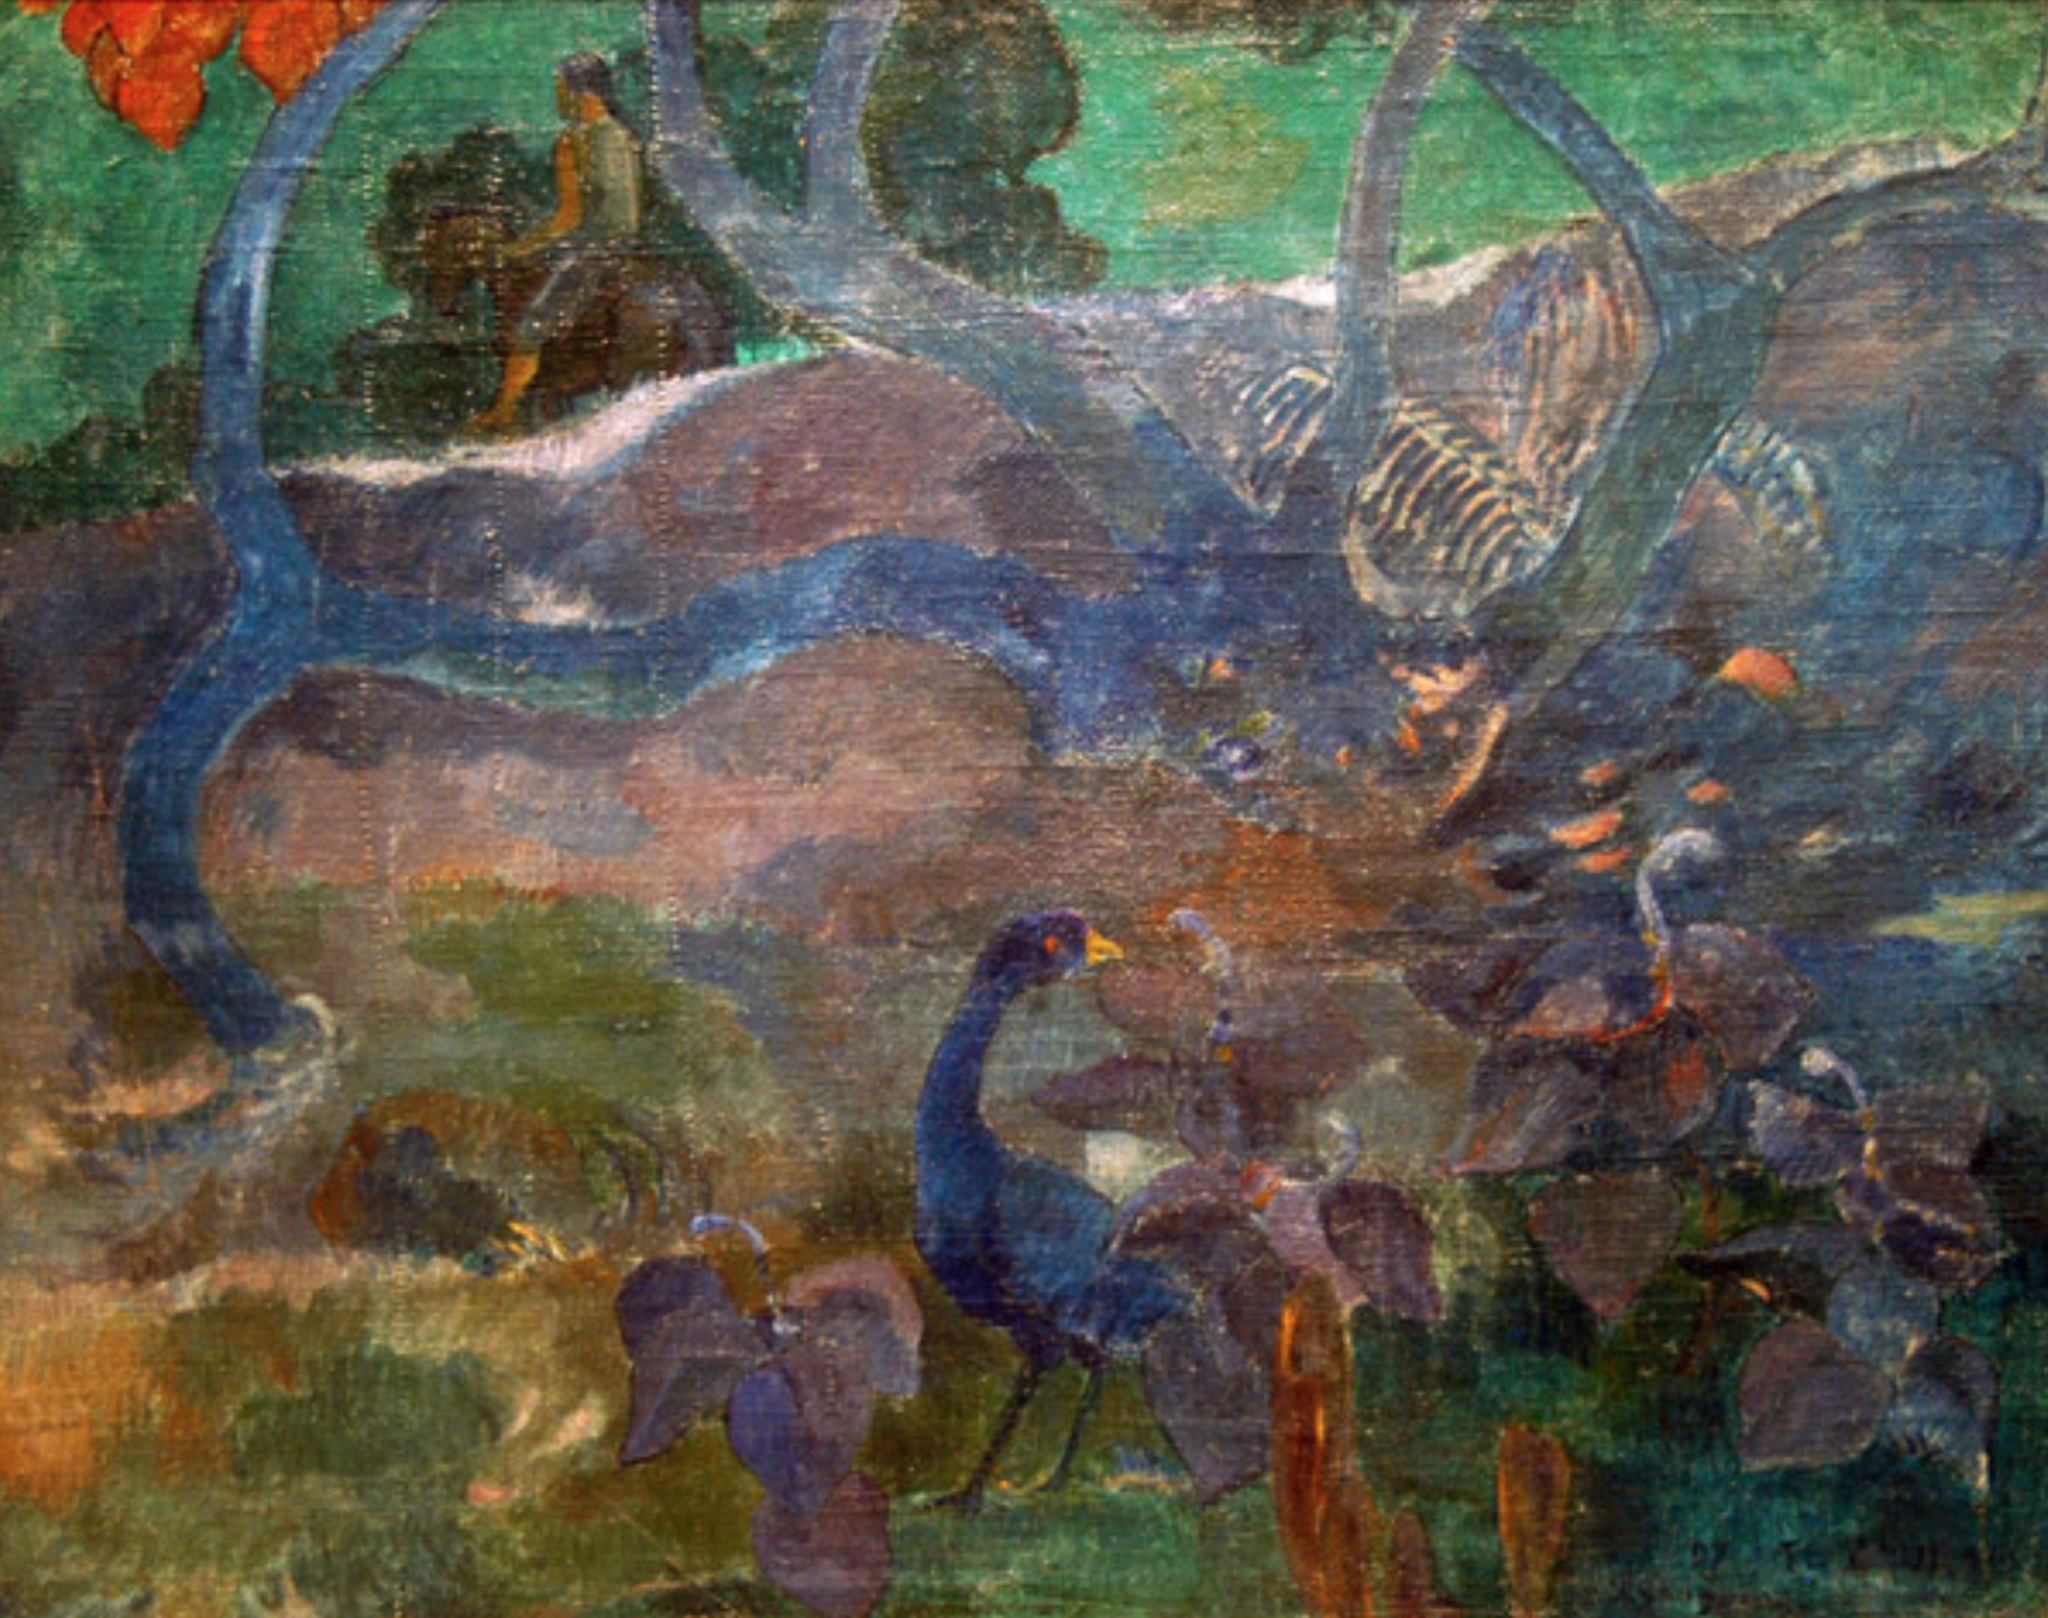 Te Bourao (The Purao Tree), di Paul Gauguin